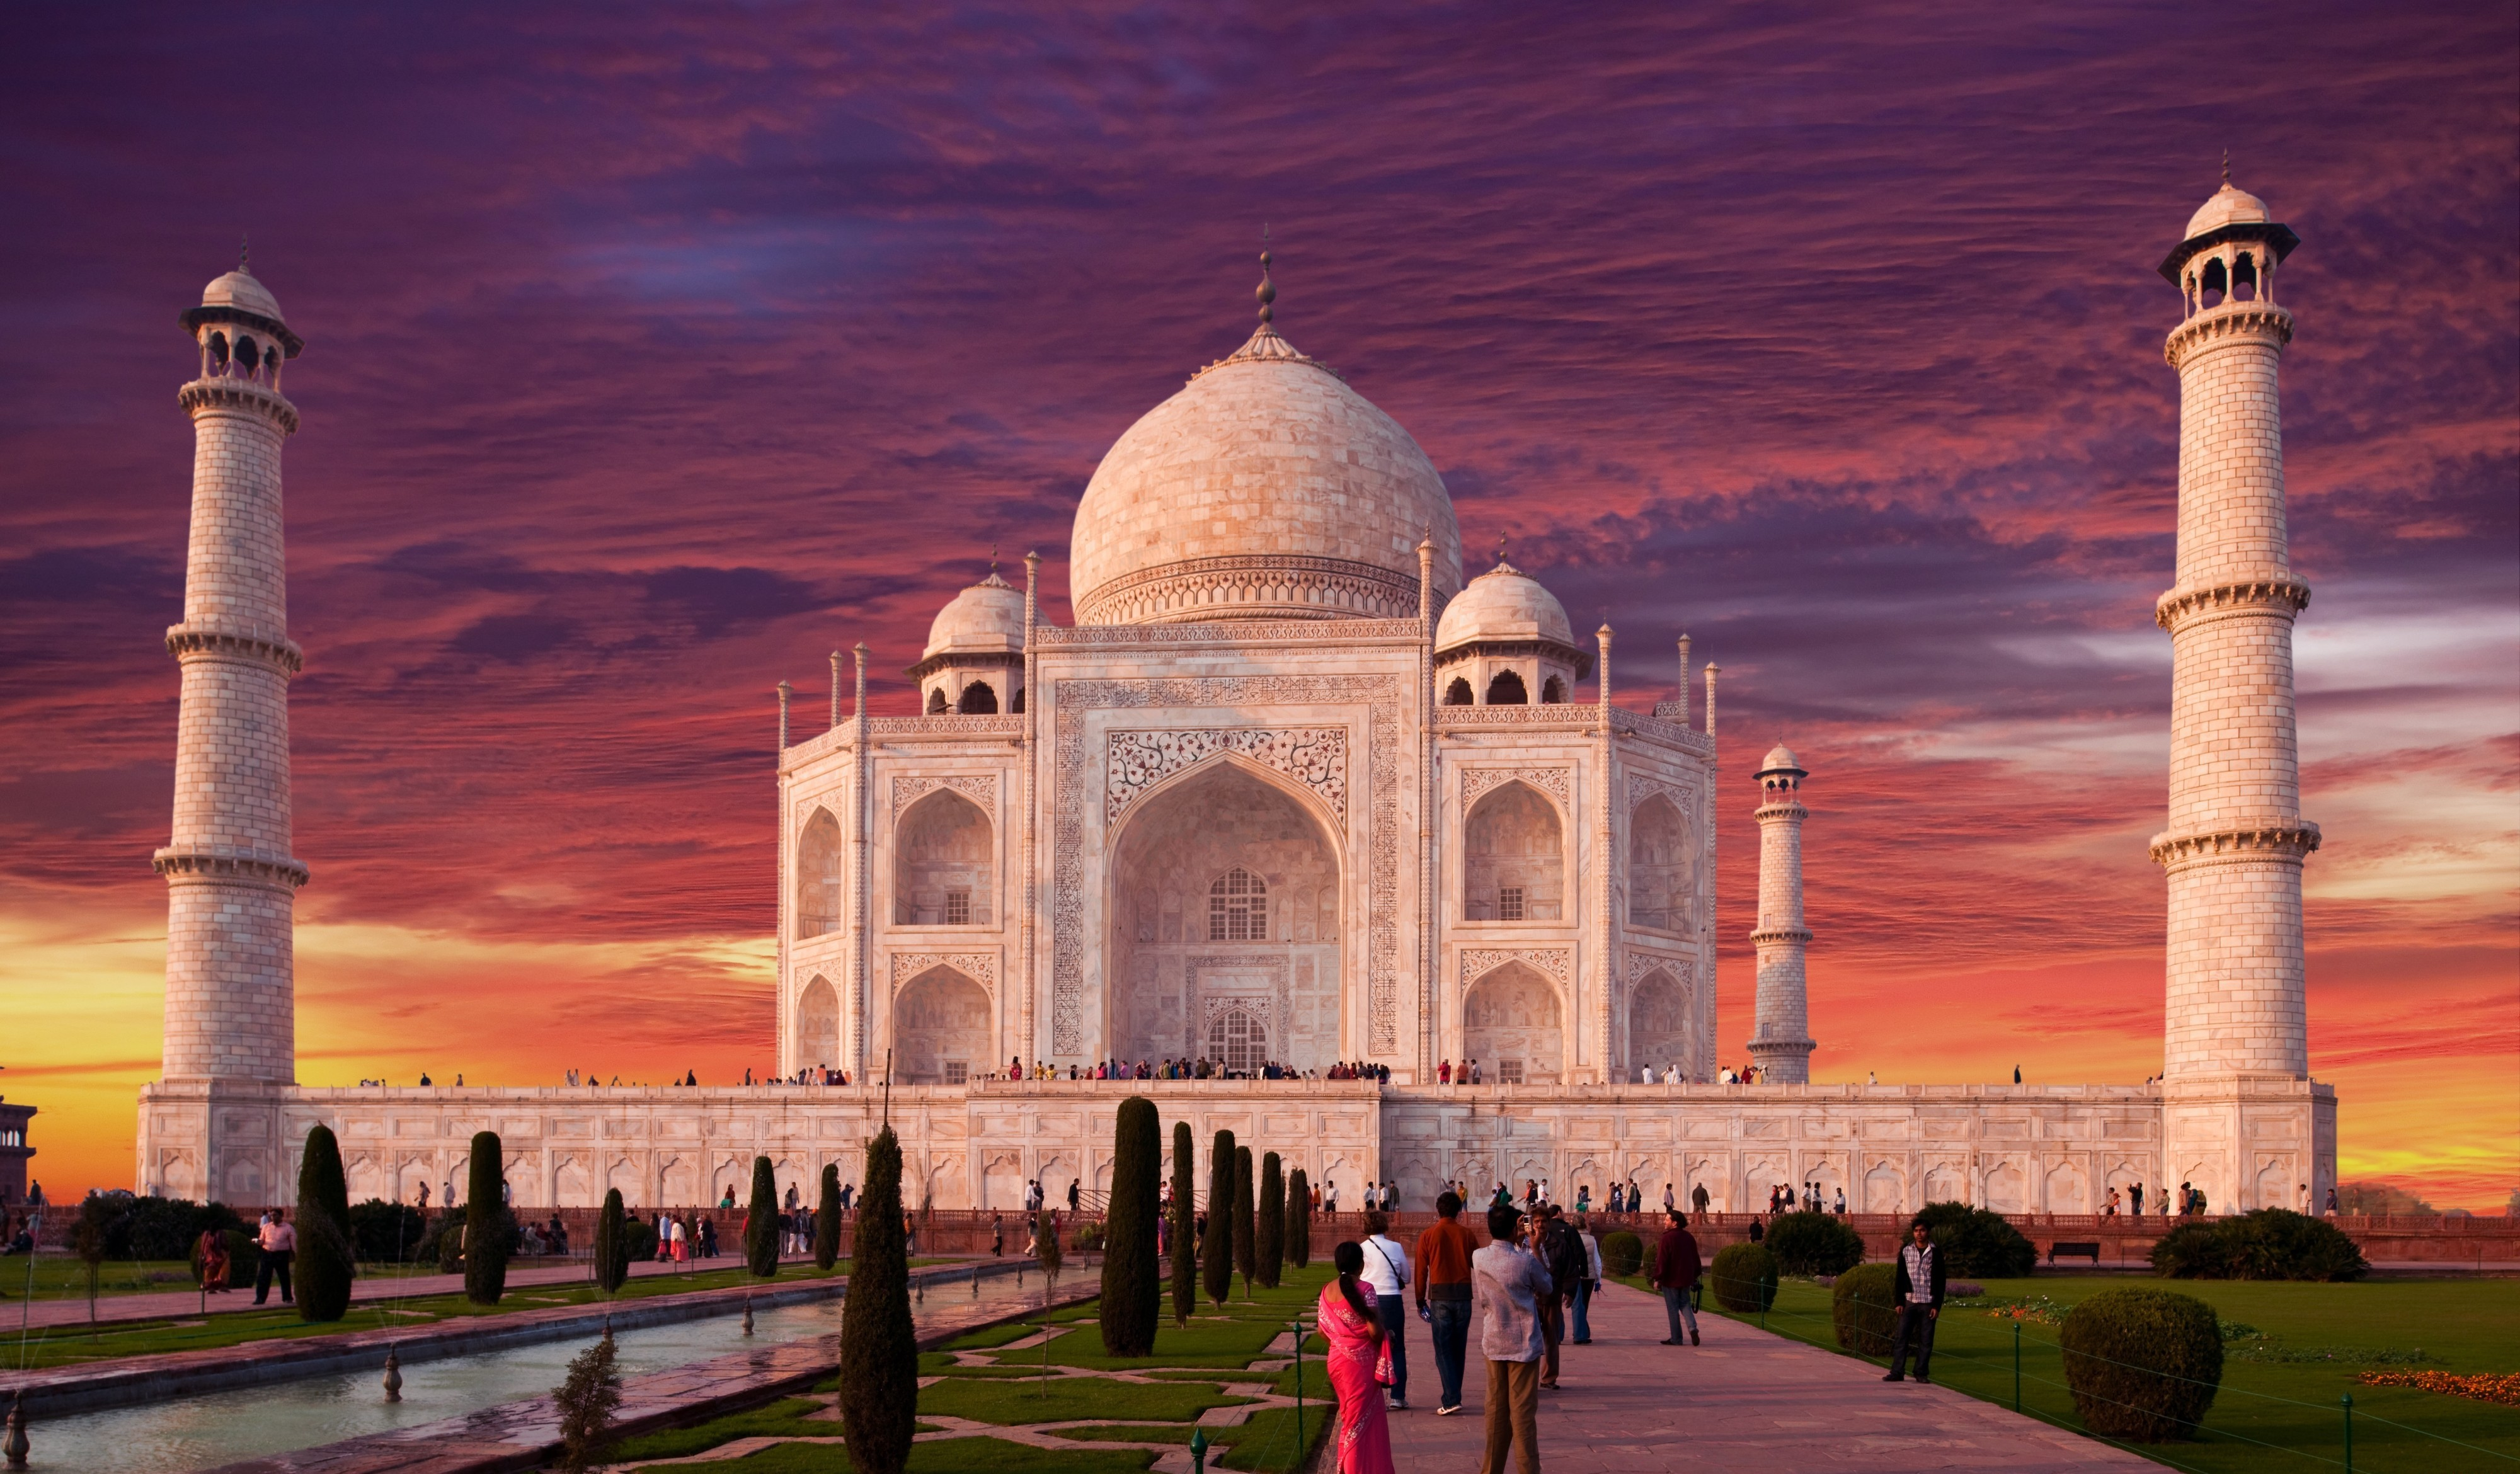 Taj mahal wallpapers images photos pictures backgrounds Indian building photos